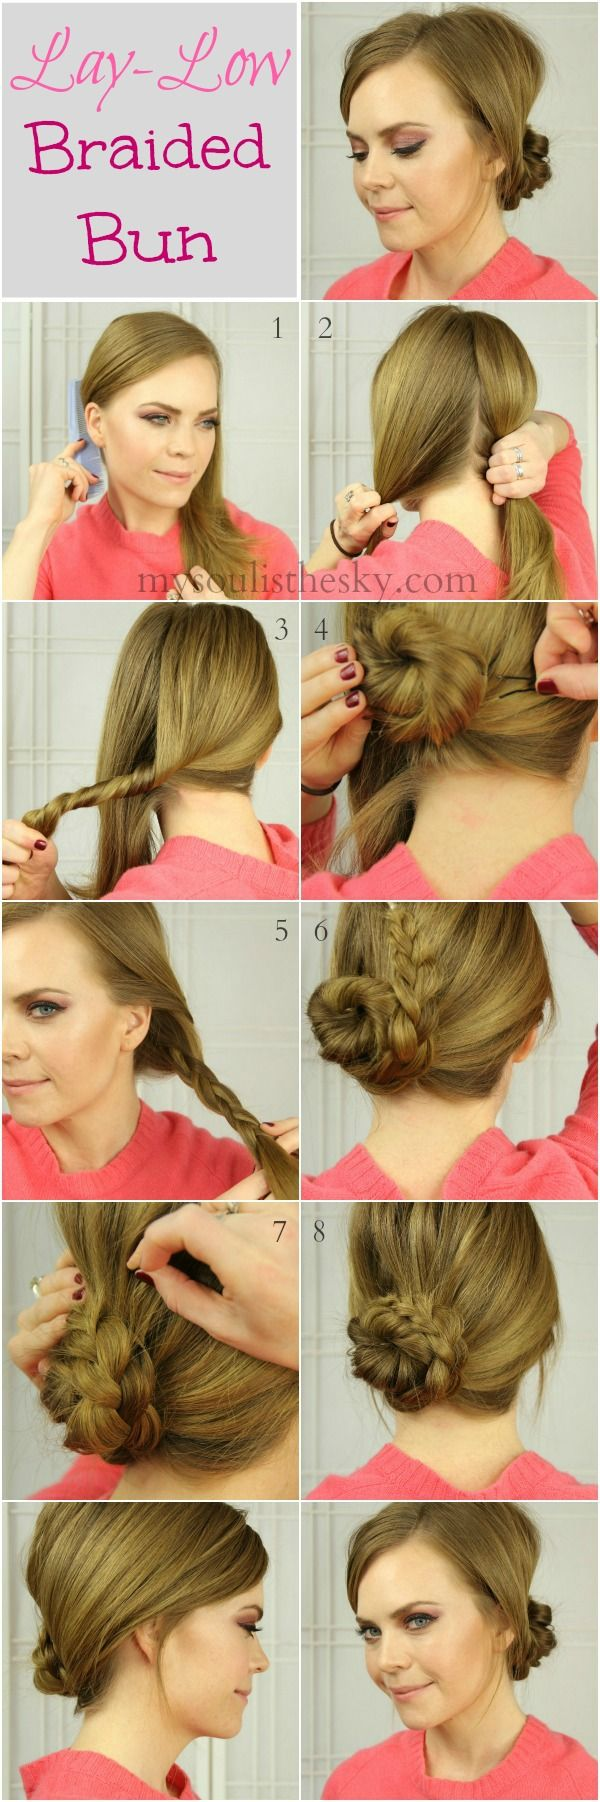 Holiday hairstyle ideas fun ways to wear a side braid more